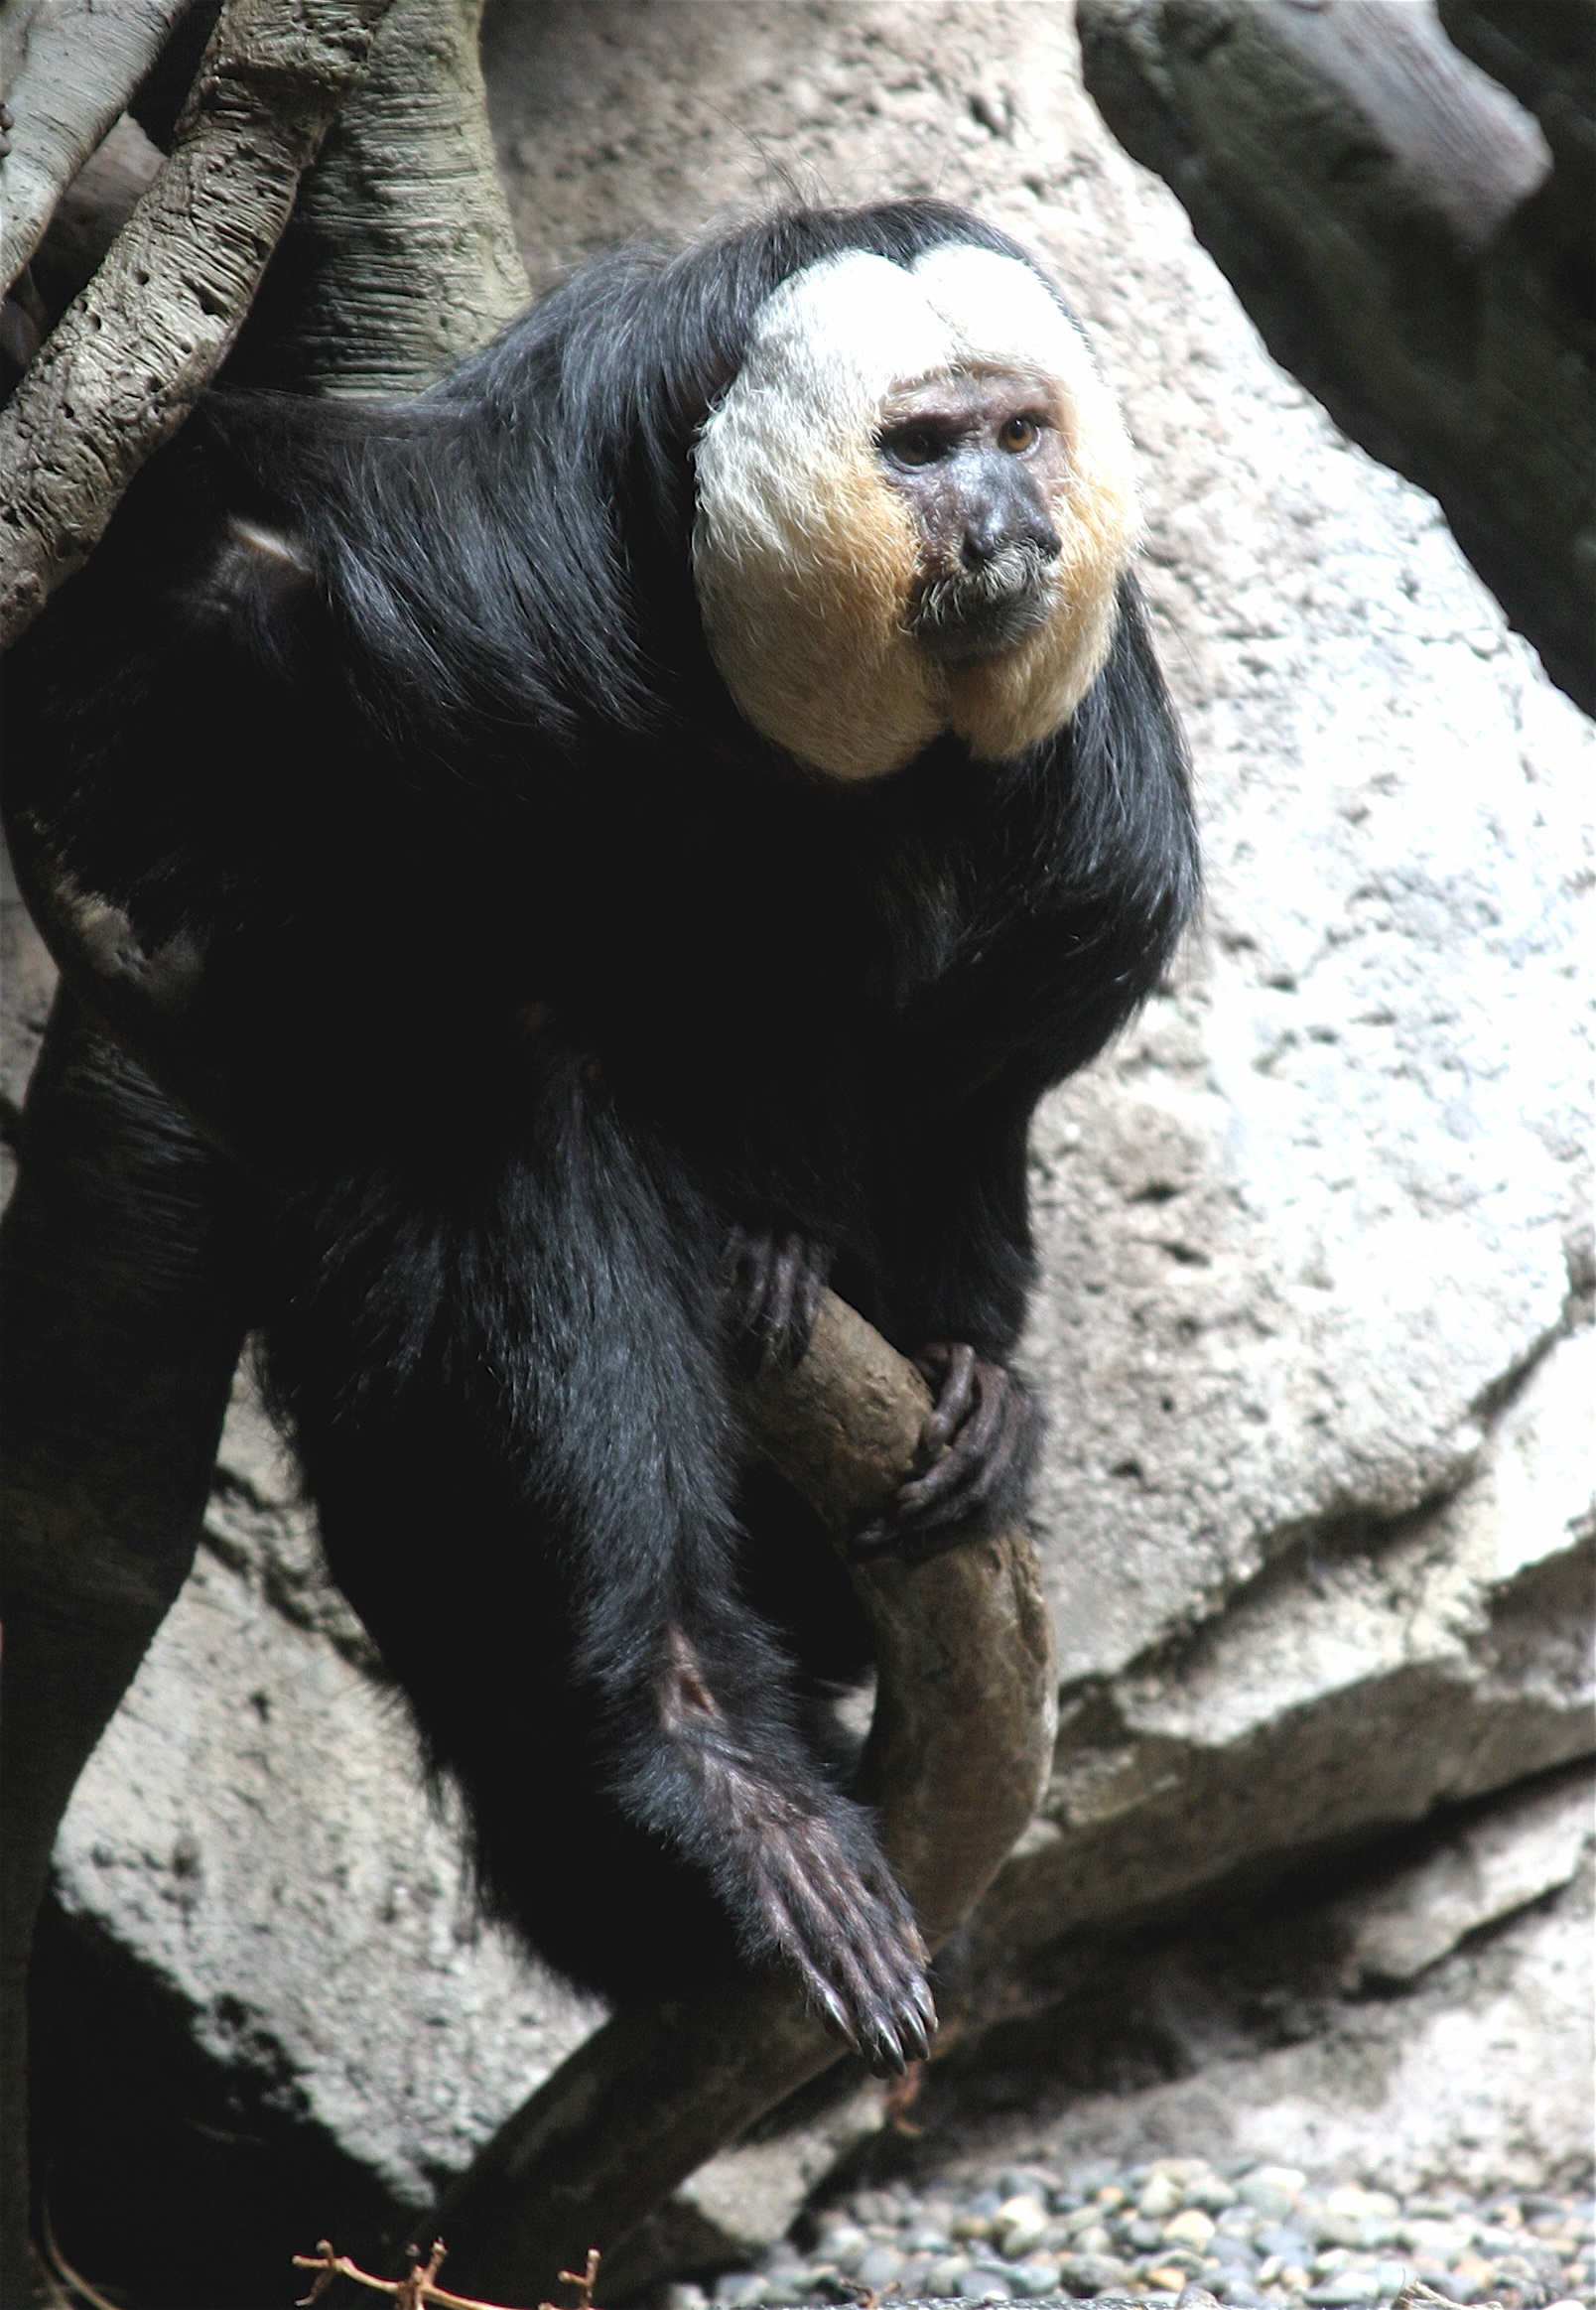 Image of White-faced Saki